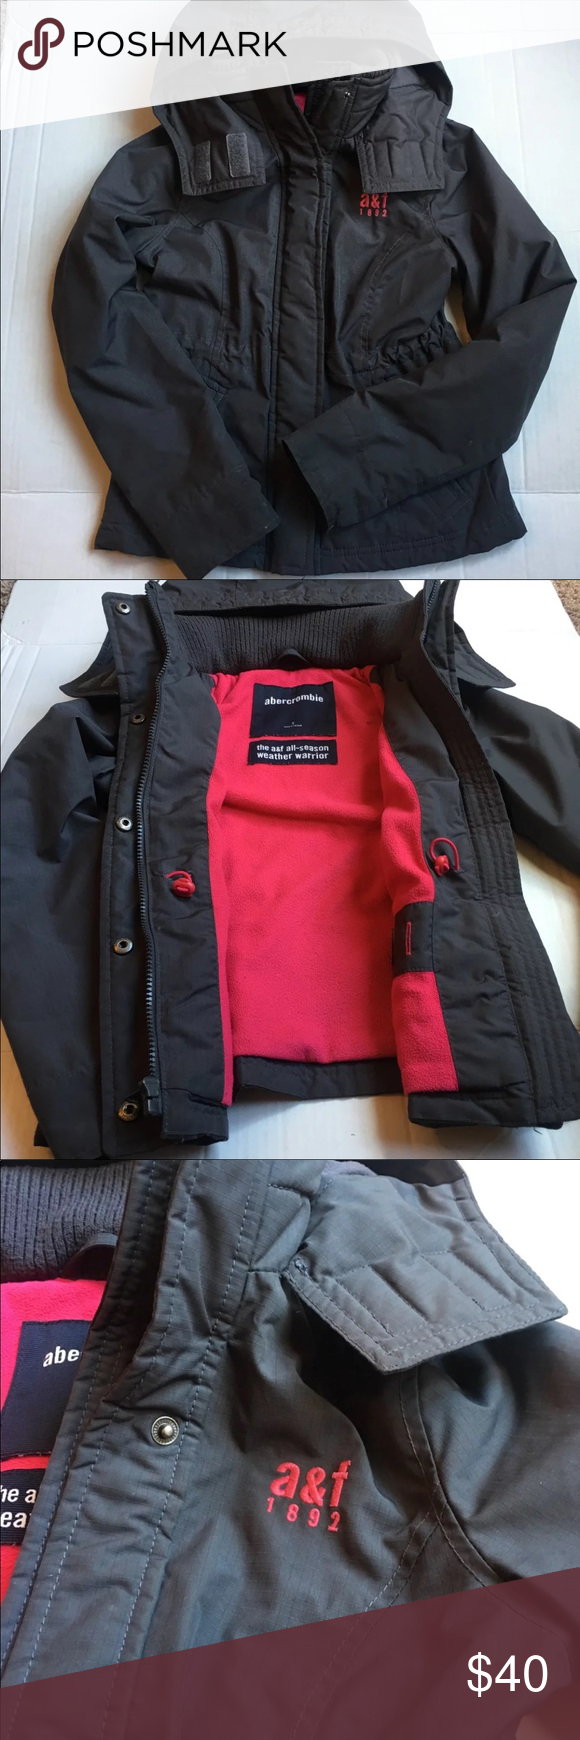 58643086d Girls Abercrombie All Weather Coat Jacket Sz S Girls Abercrombie ...